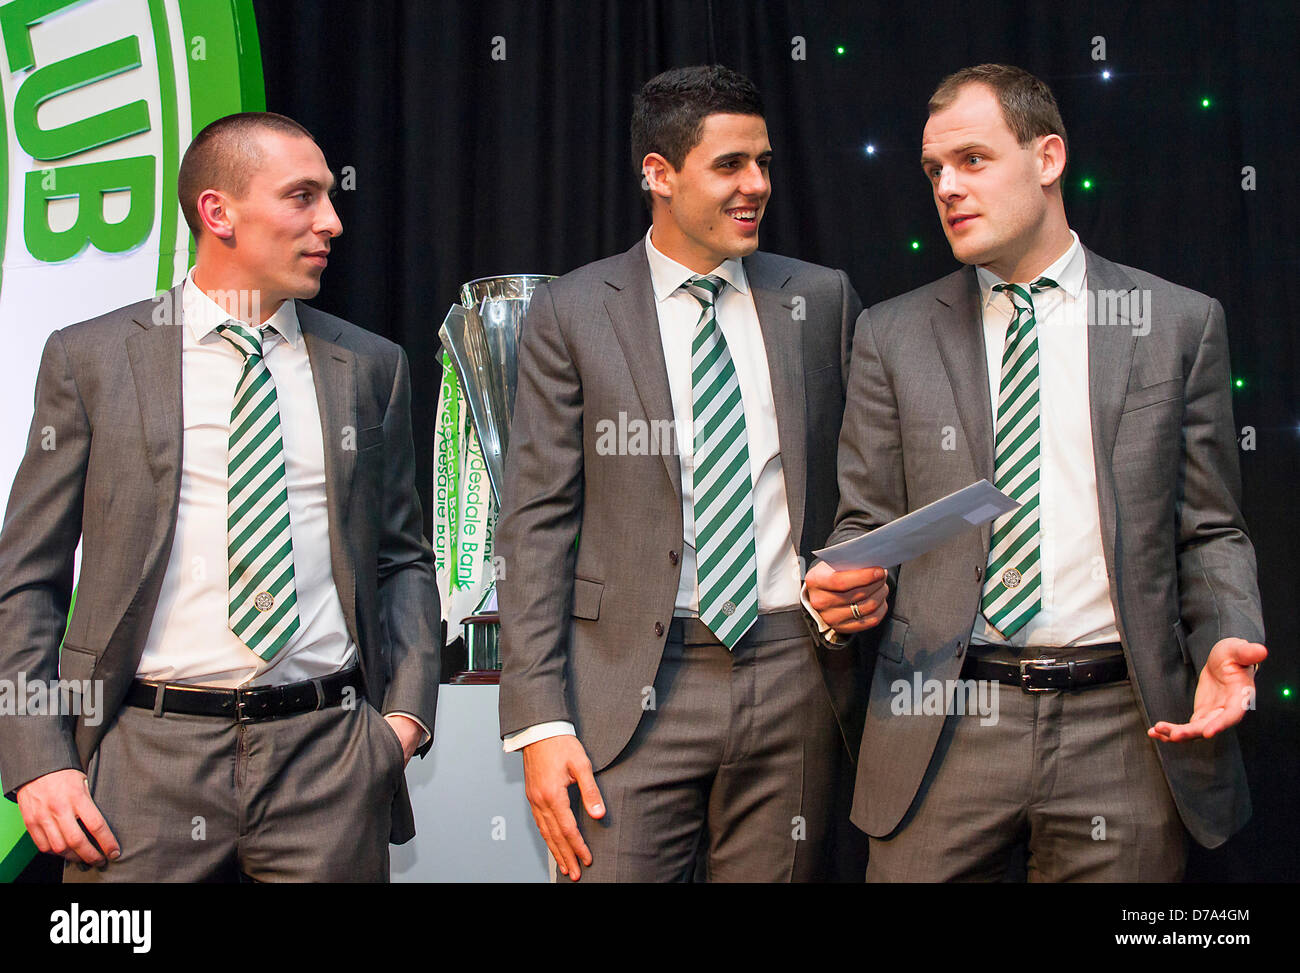 29.04.2013 Glasgow, Scotland. Scott Brown, Tom Rogic and Anthony Stokes on stage during the Celtic Football Club - Stock Image